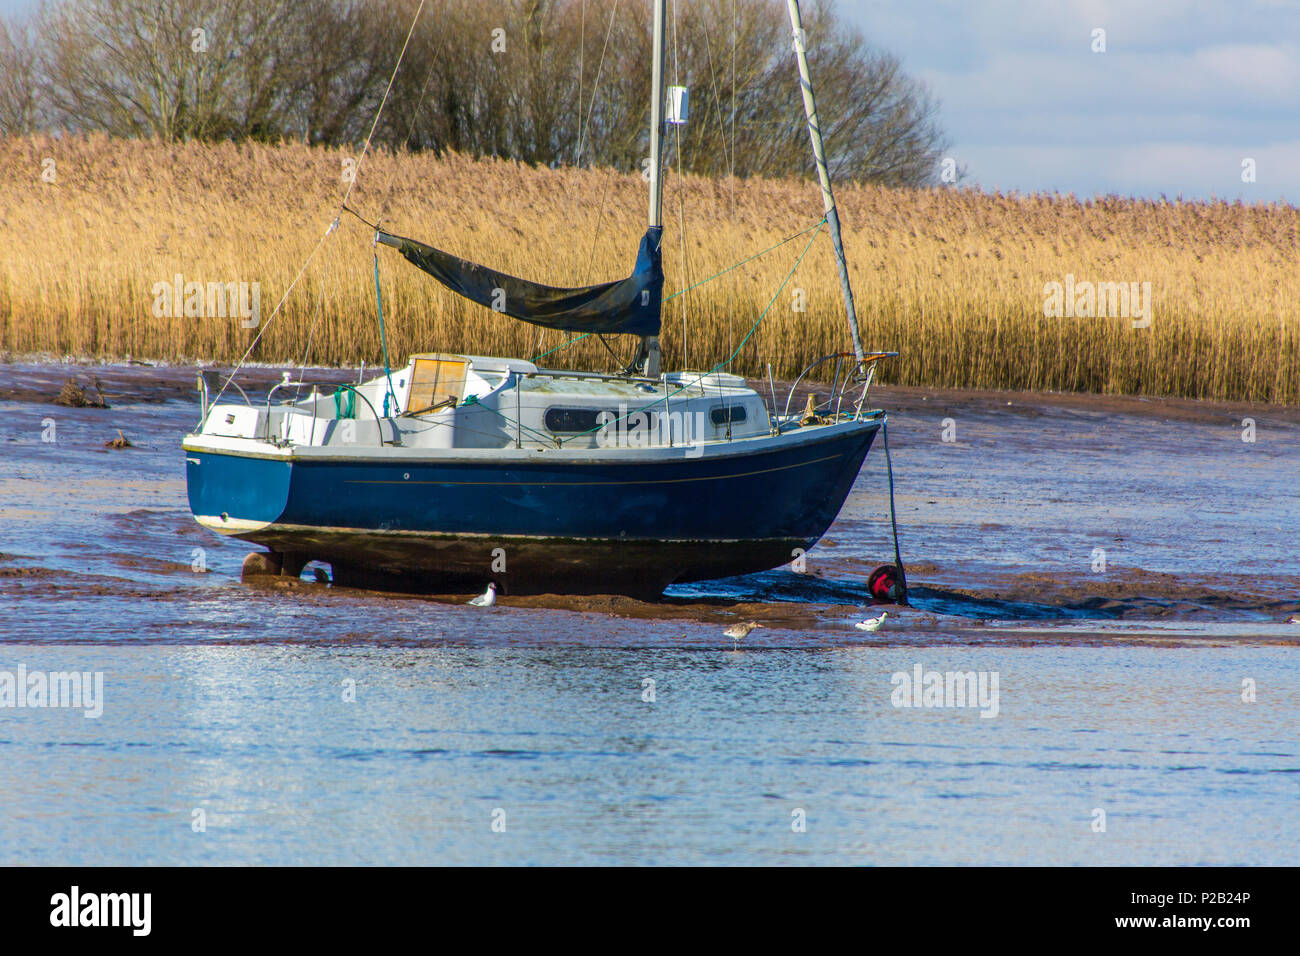 A modern yacht in need of cleaning at its permanent mooring on the River Exe near Topsham, Devon, England, UK - Stock Image